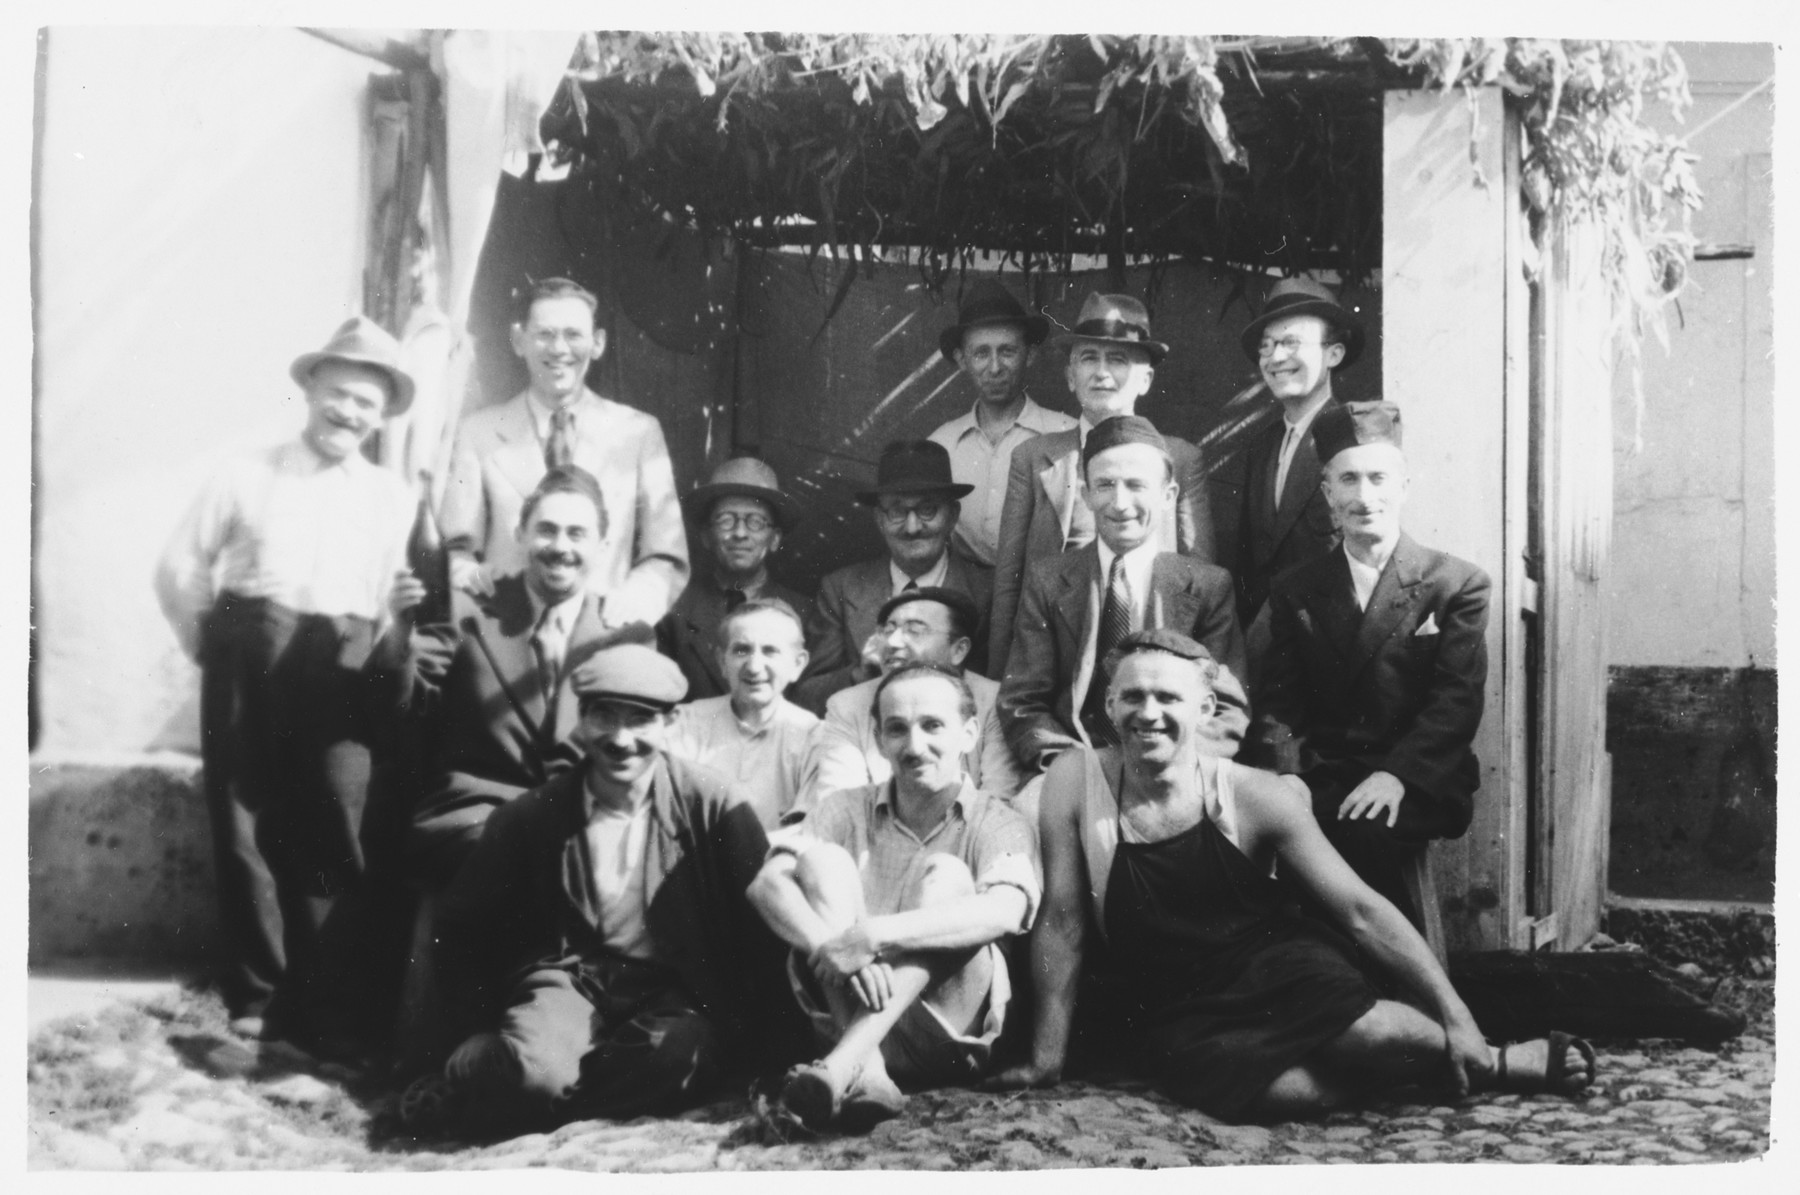 Jewish prisoners in a labor camp in Salerno, Italy pose in a sukkah.  Josef Kaufman is pictured in the middle row, second from the right.